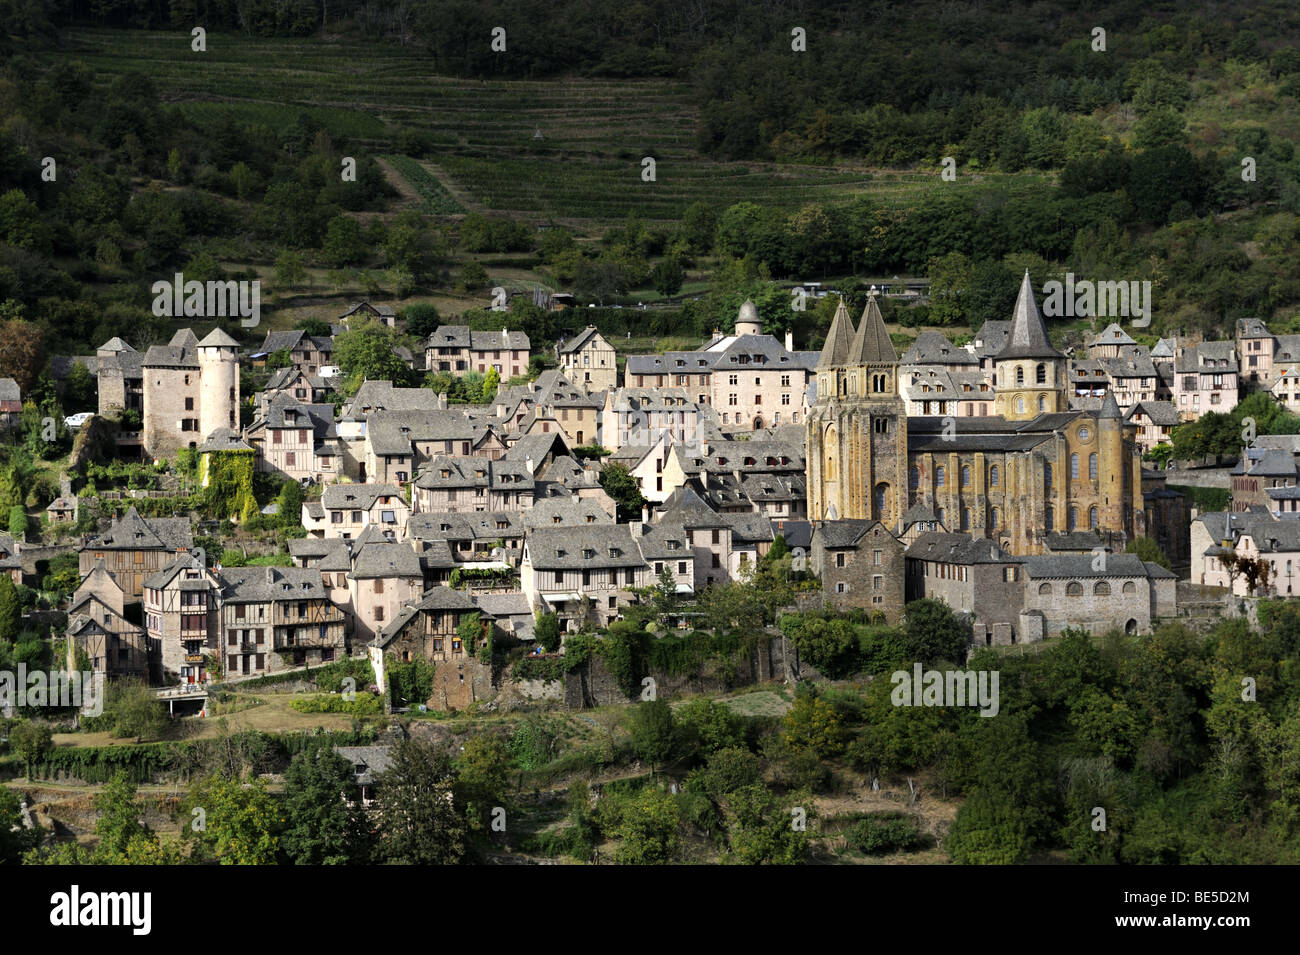 The historic hillside village of Conques, France - Stock Image